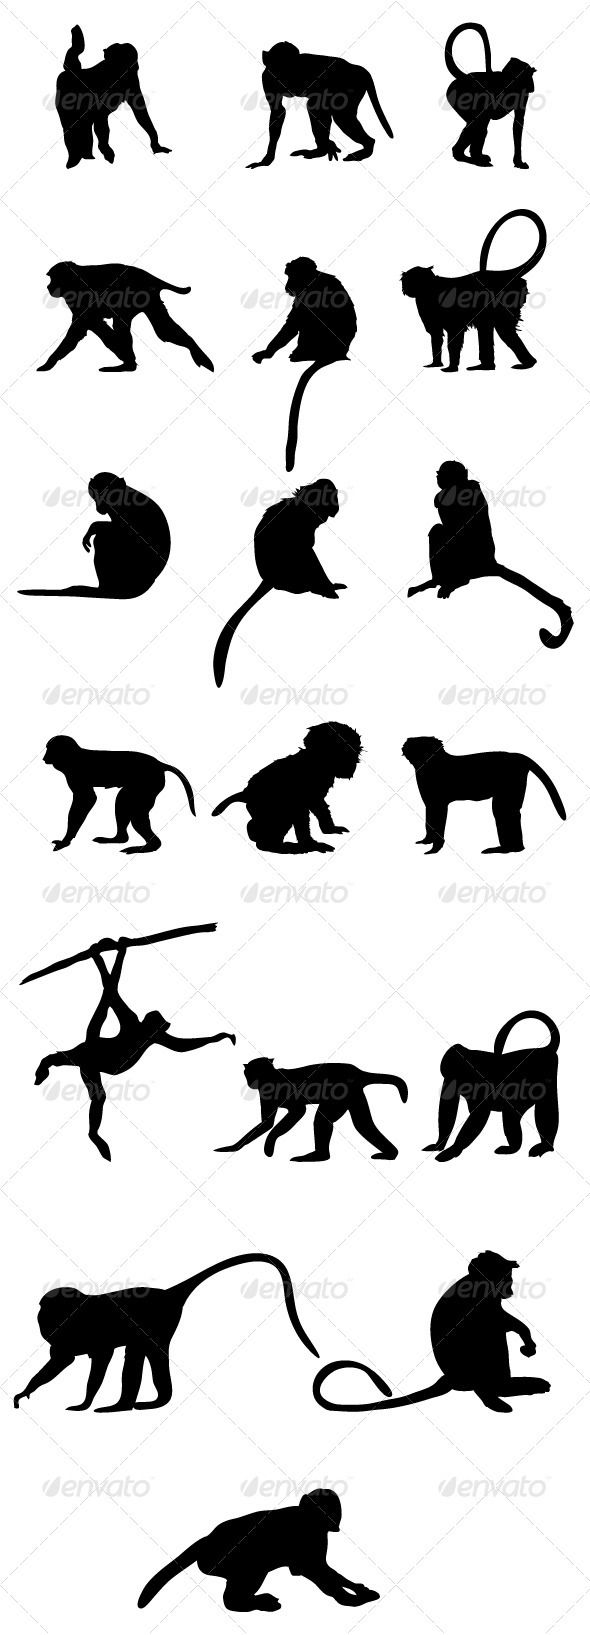 Monkey Silhouette Vector